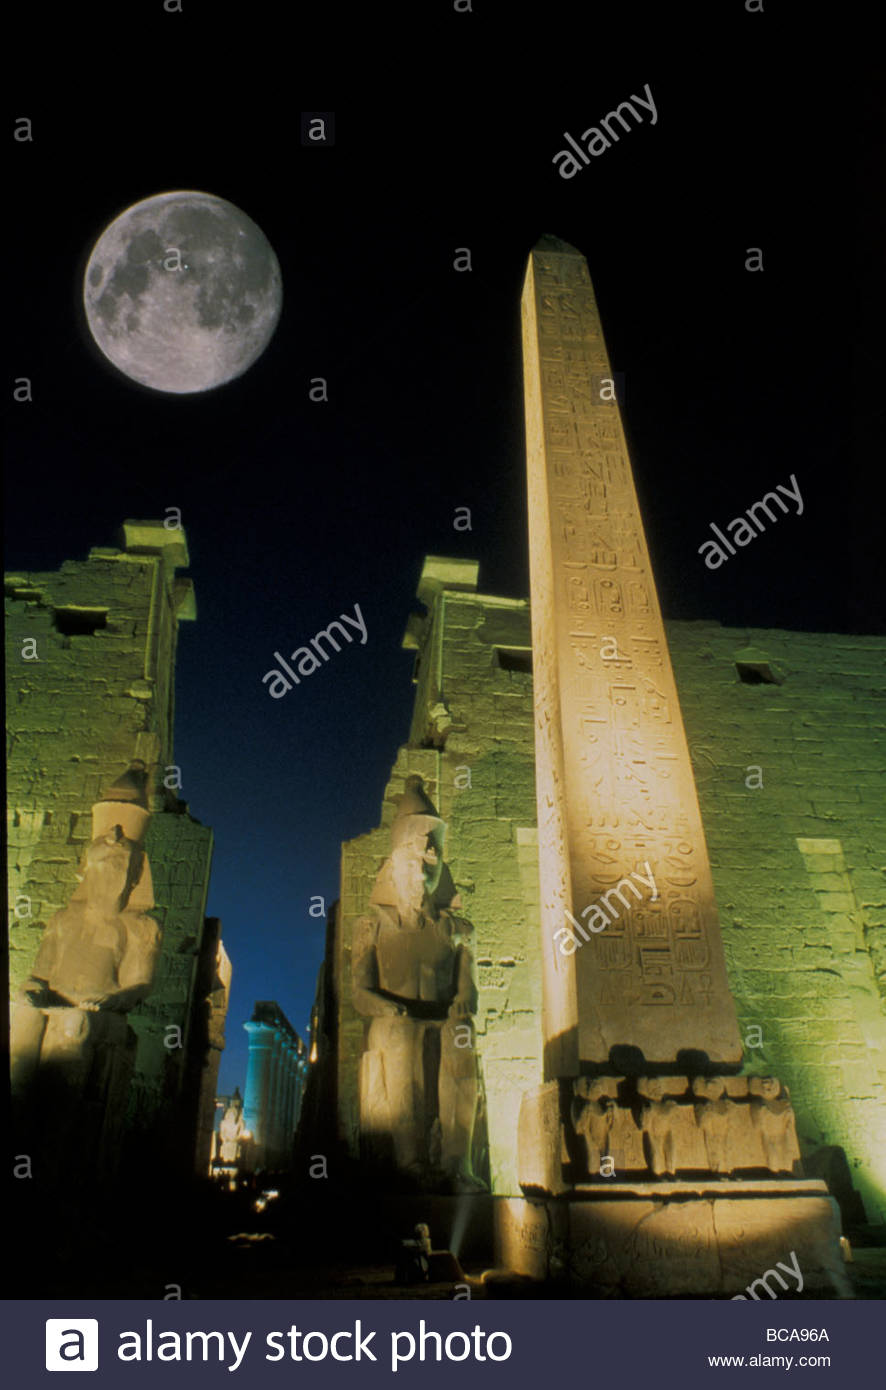 Moonrise over Luxor complex in Luxor, Egypt. - Stock Image